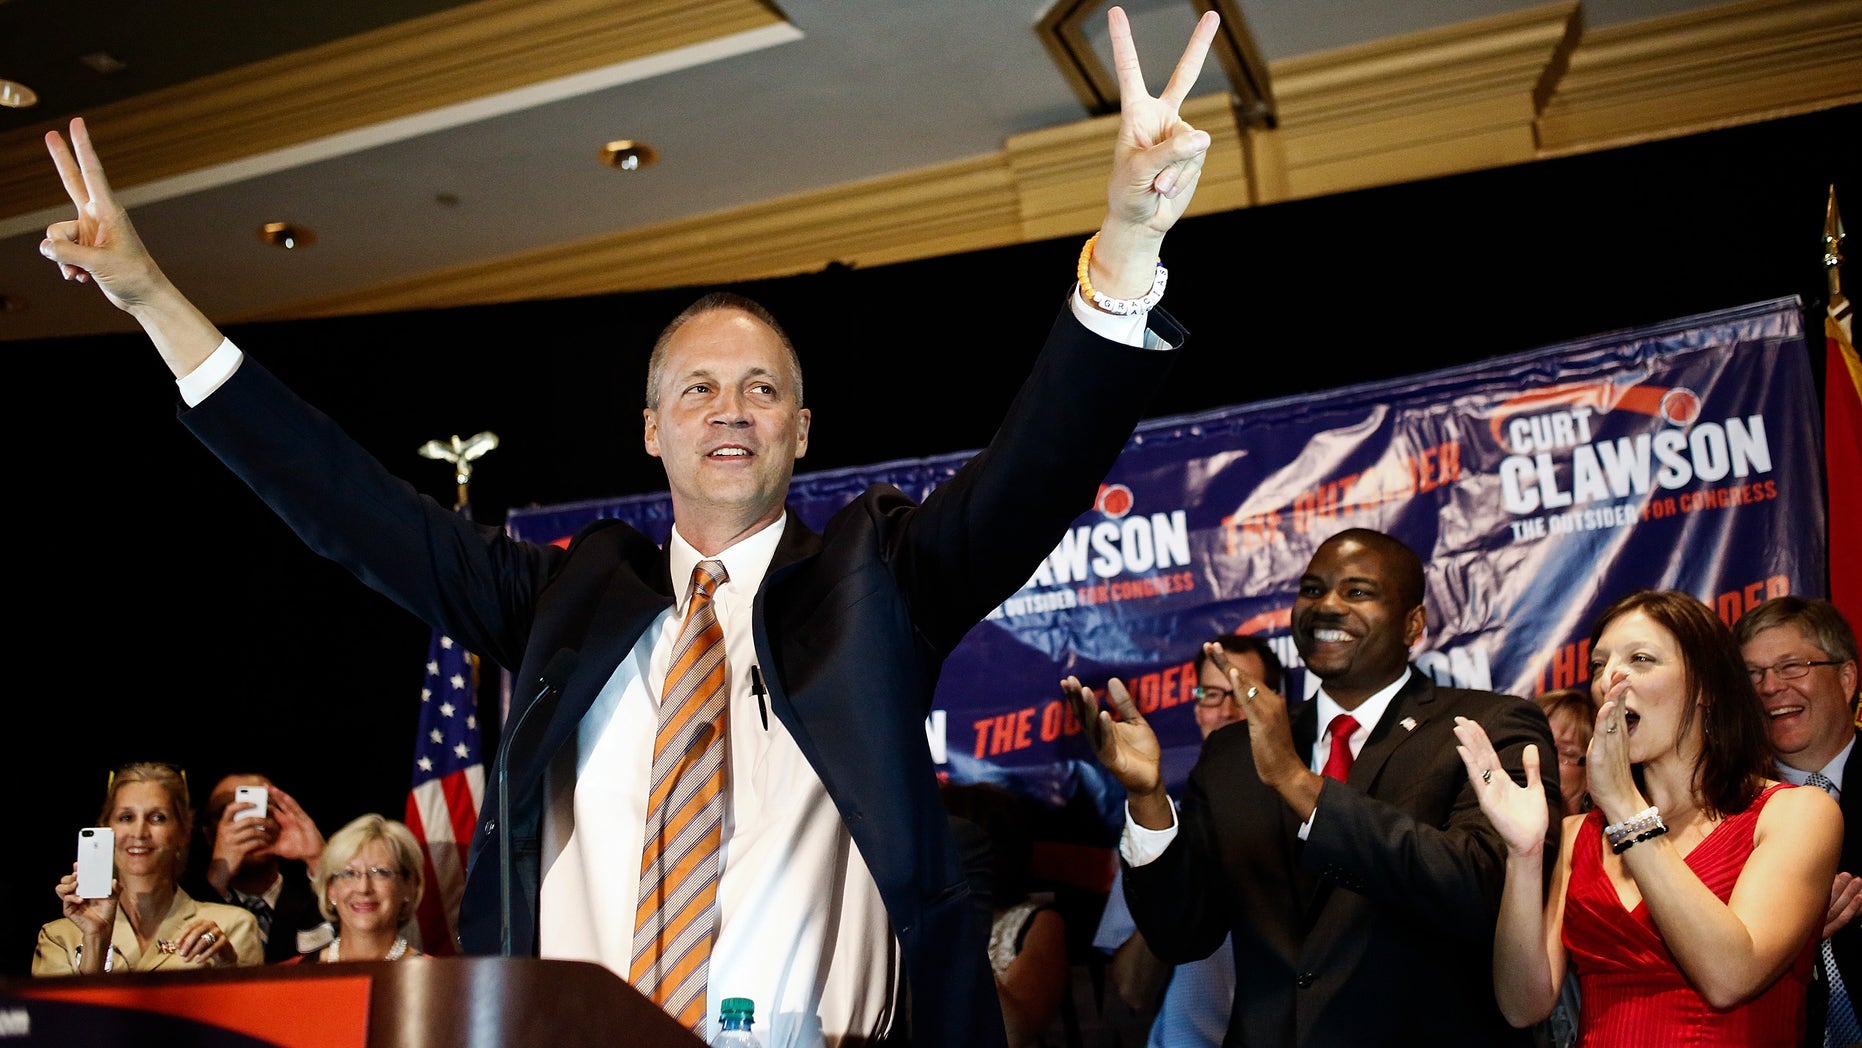 April 22, 2014: Curt Clawson celebrates along with a cheering crowd at his election party at the Hyatt Regency Coconut Point in Bonita Springs, Fla.